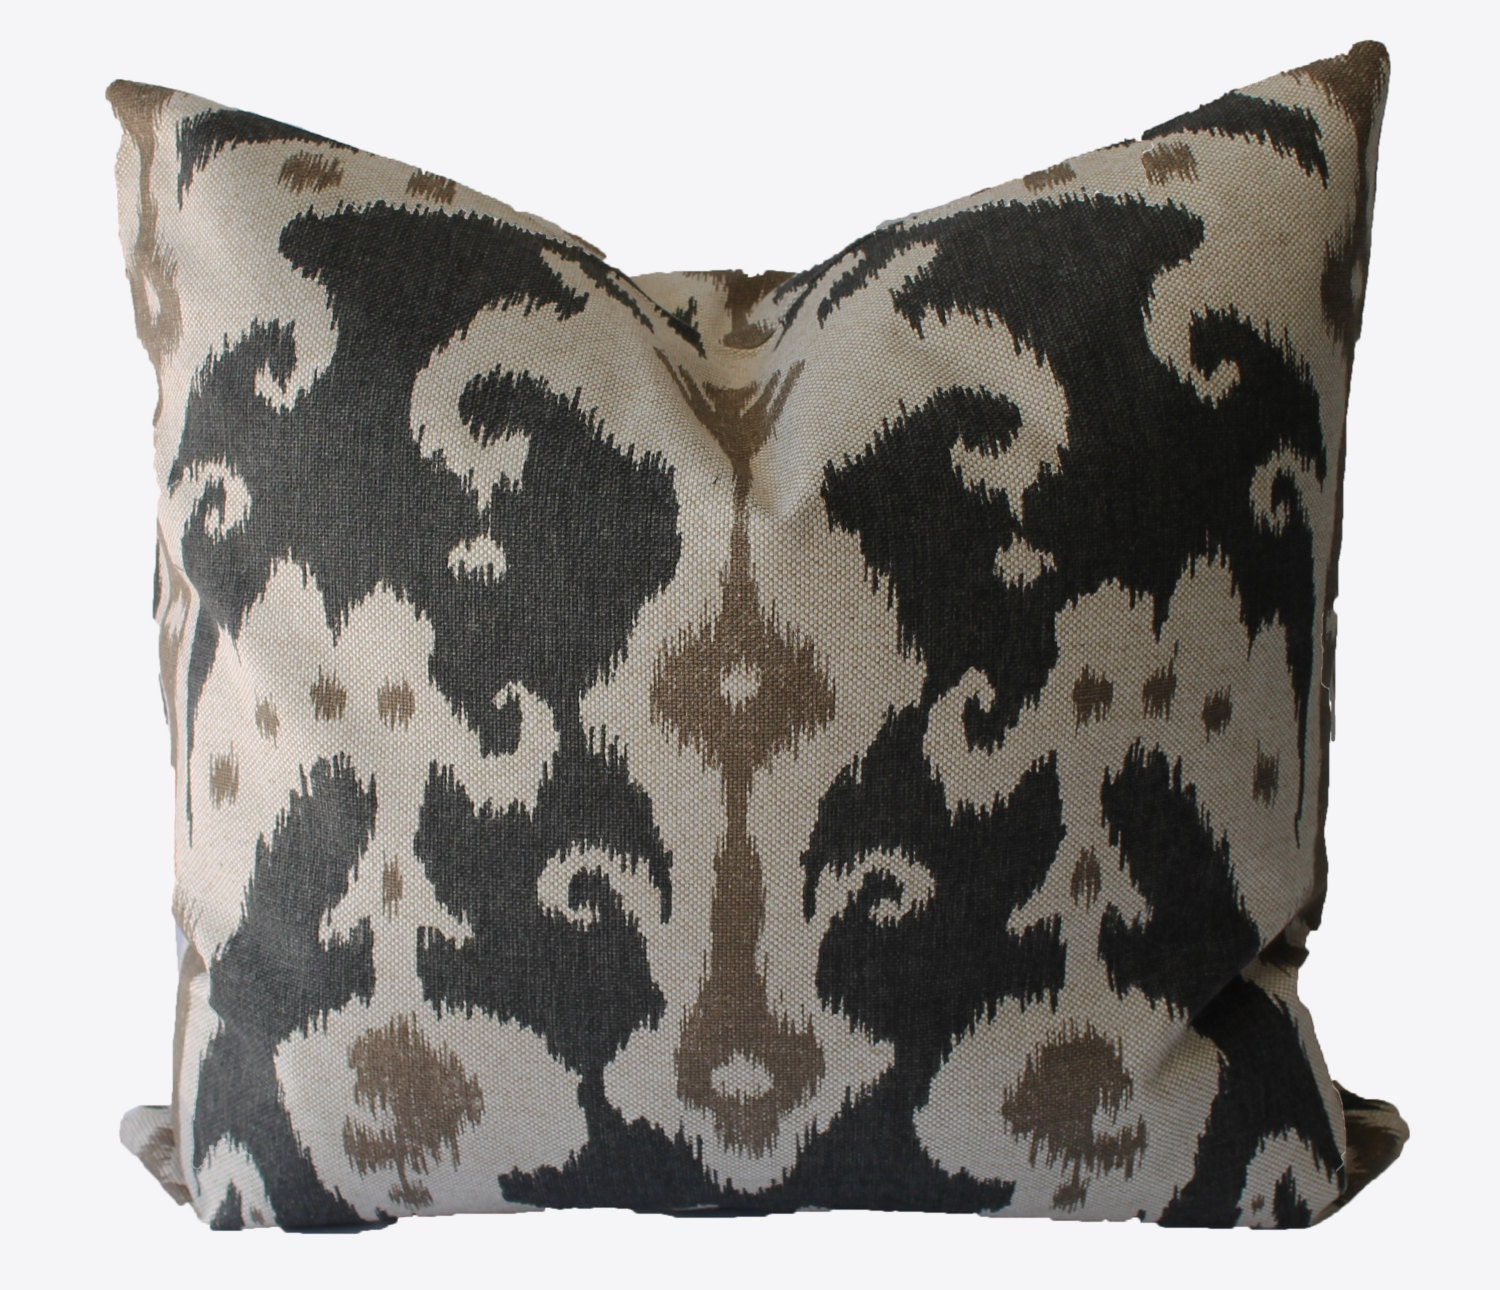 Throw Pillows Charcoal : Decorative Ikat Charcoal Grey Beige Tan Marrakesh 18x18